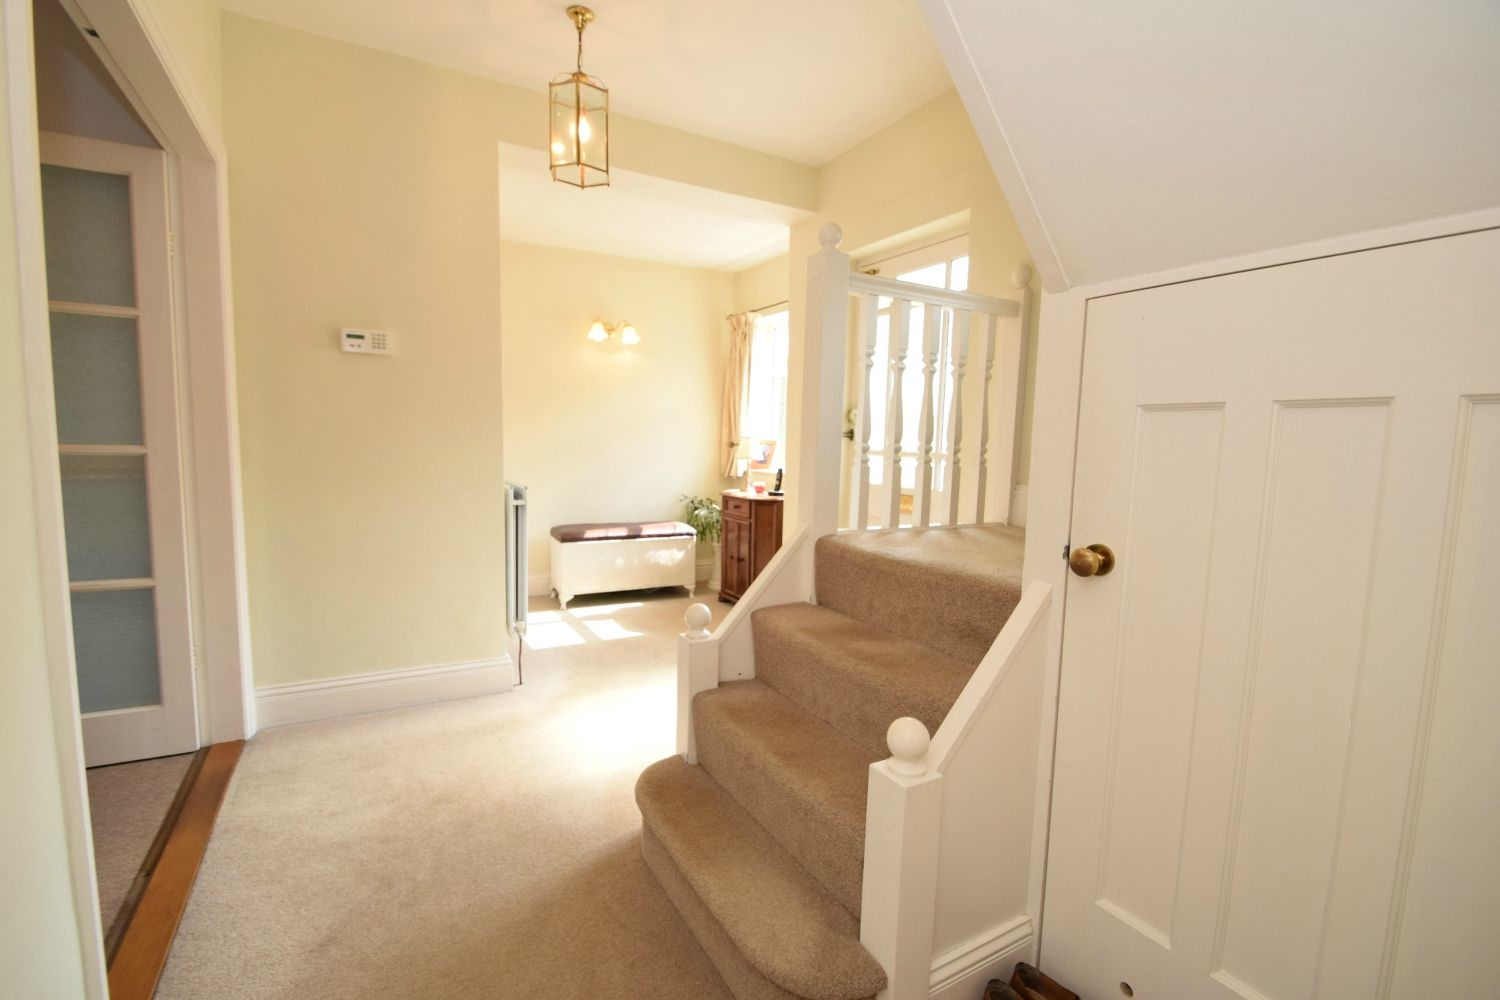 3 bed detached for sale in Reservoir Road, Cofton Hackett  - Property Image 4